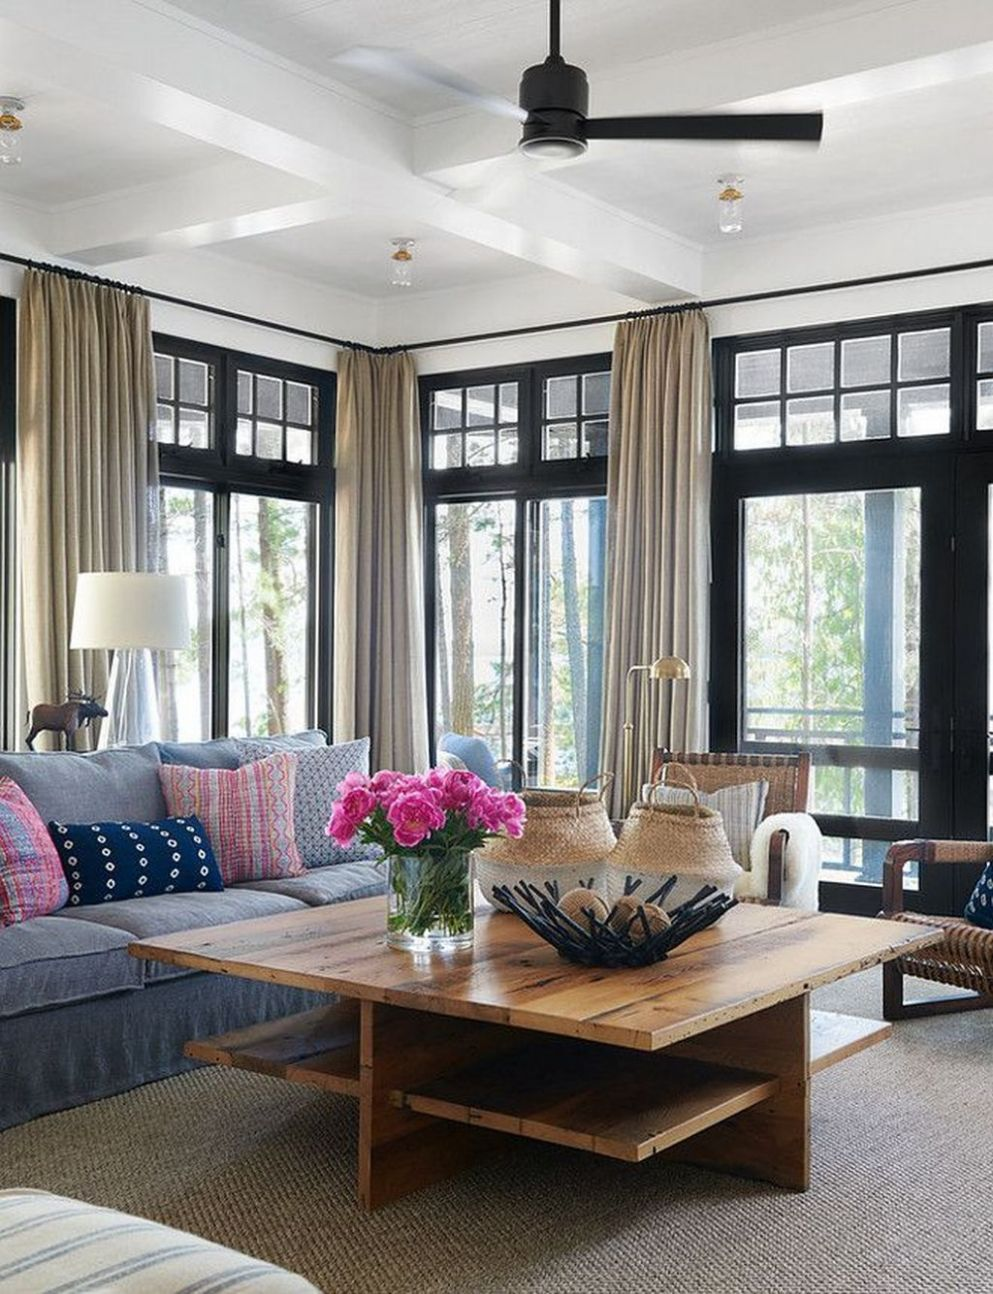 10 Beautiful Home Curtain Ideas For Your Interior Design To Looks ..